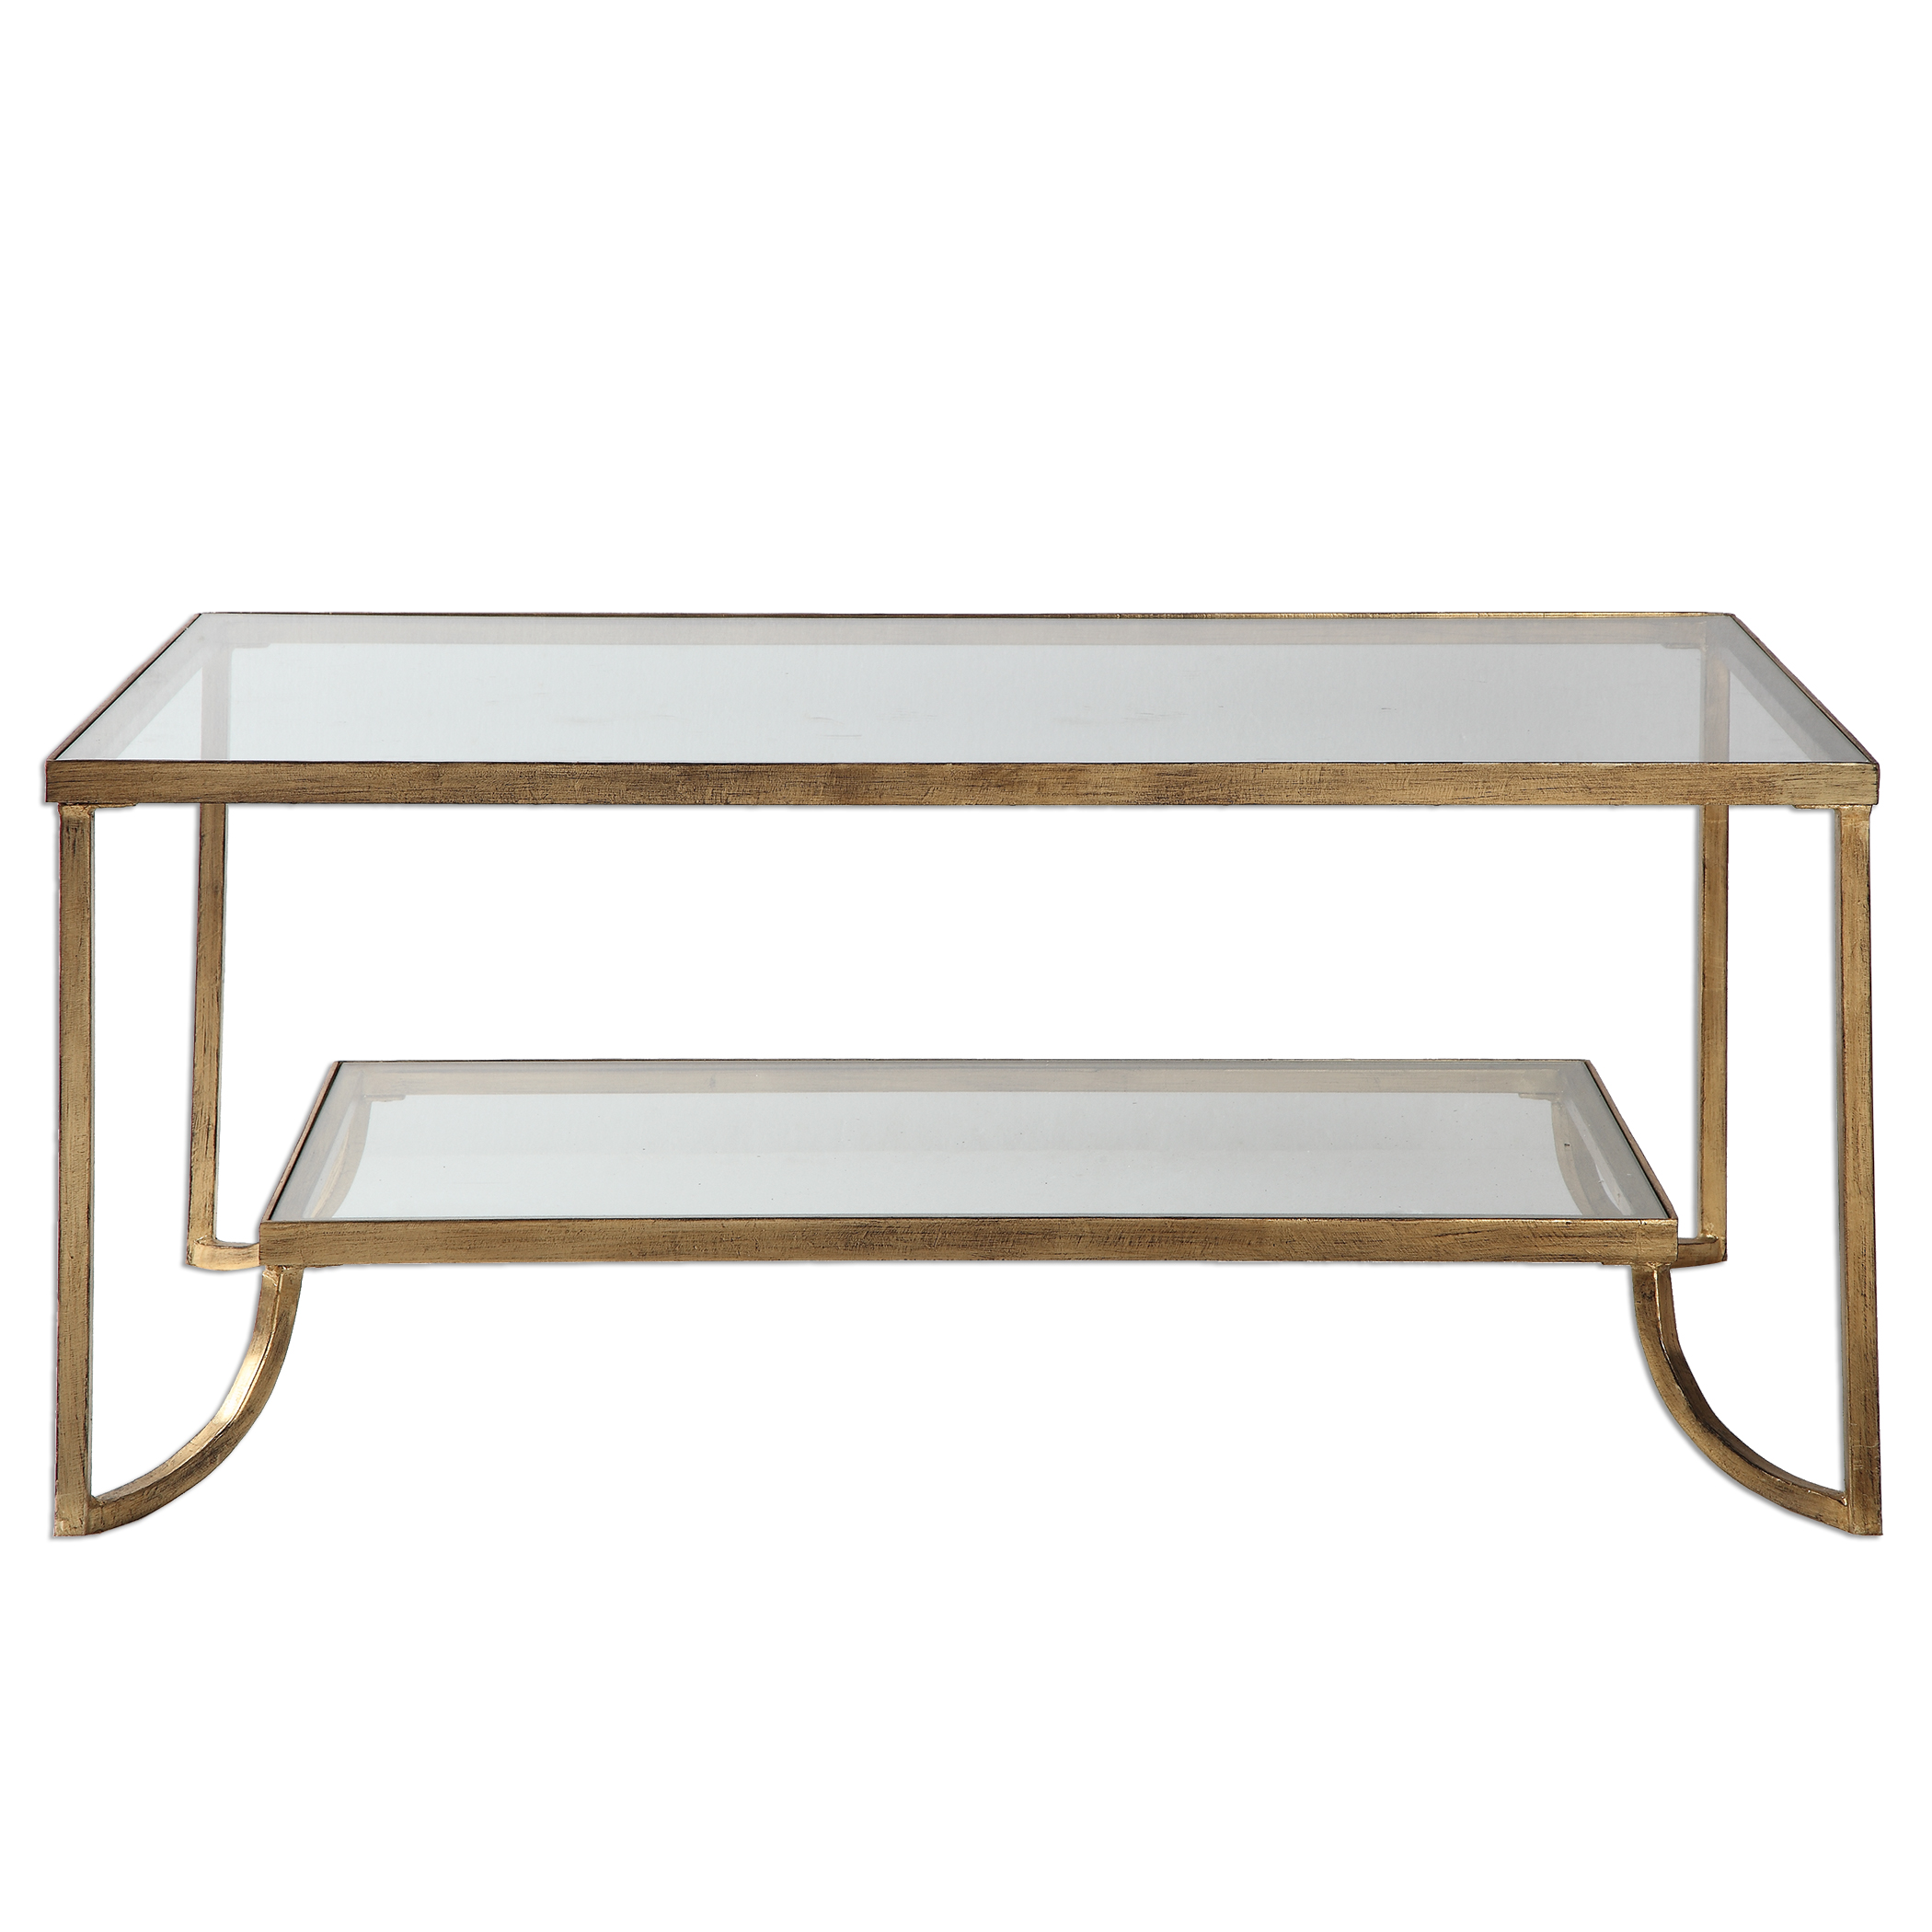 Accent Furniture - Occasional Tables Katina Gold Leaf Coffee Table by Uttermost at Upper Room Home Furnishings